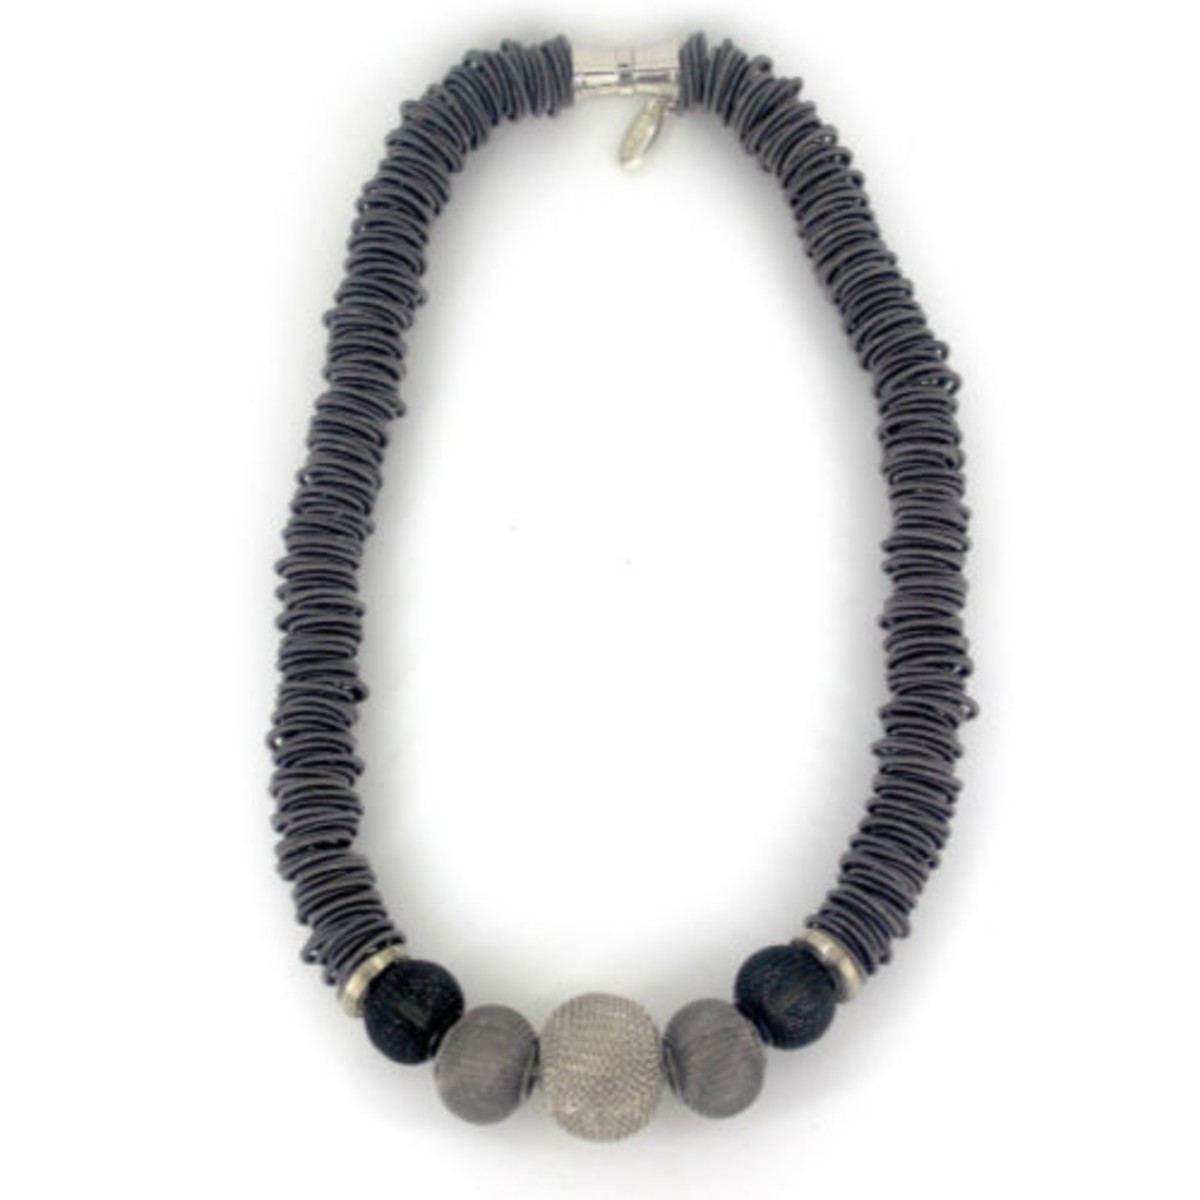 Slate short spring ring necklace with mesh beads